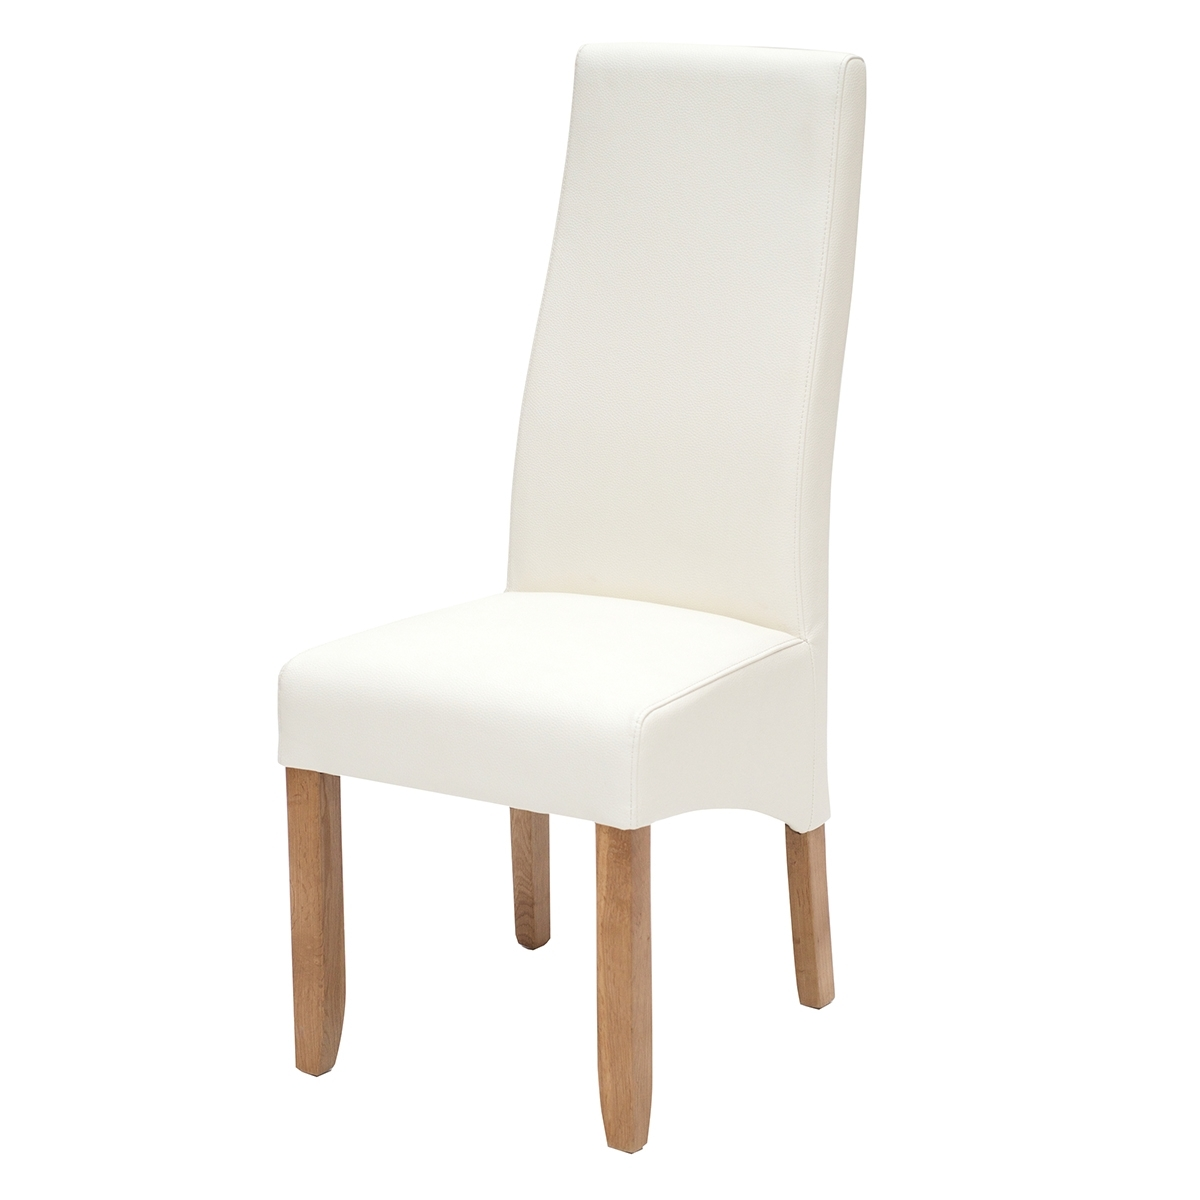 Wavey Dining Chair – Scs Endurance Illusion White – Willis & Gambier For Widely Used Scs Dining Furniture (View 12 of 25)